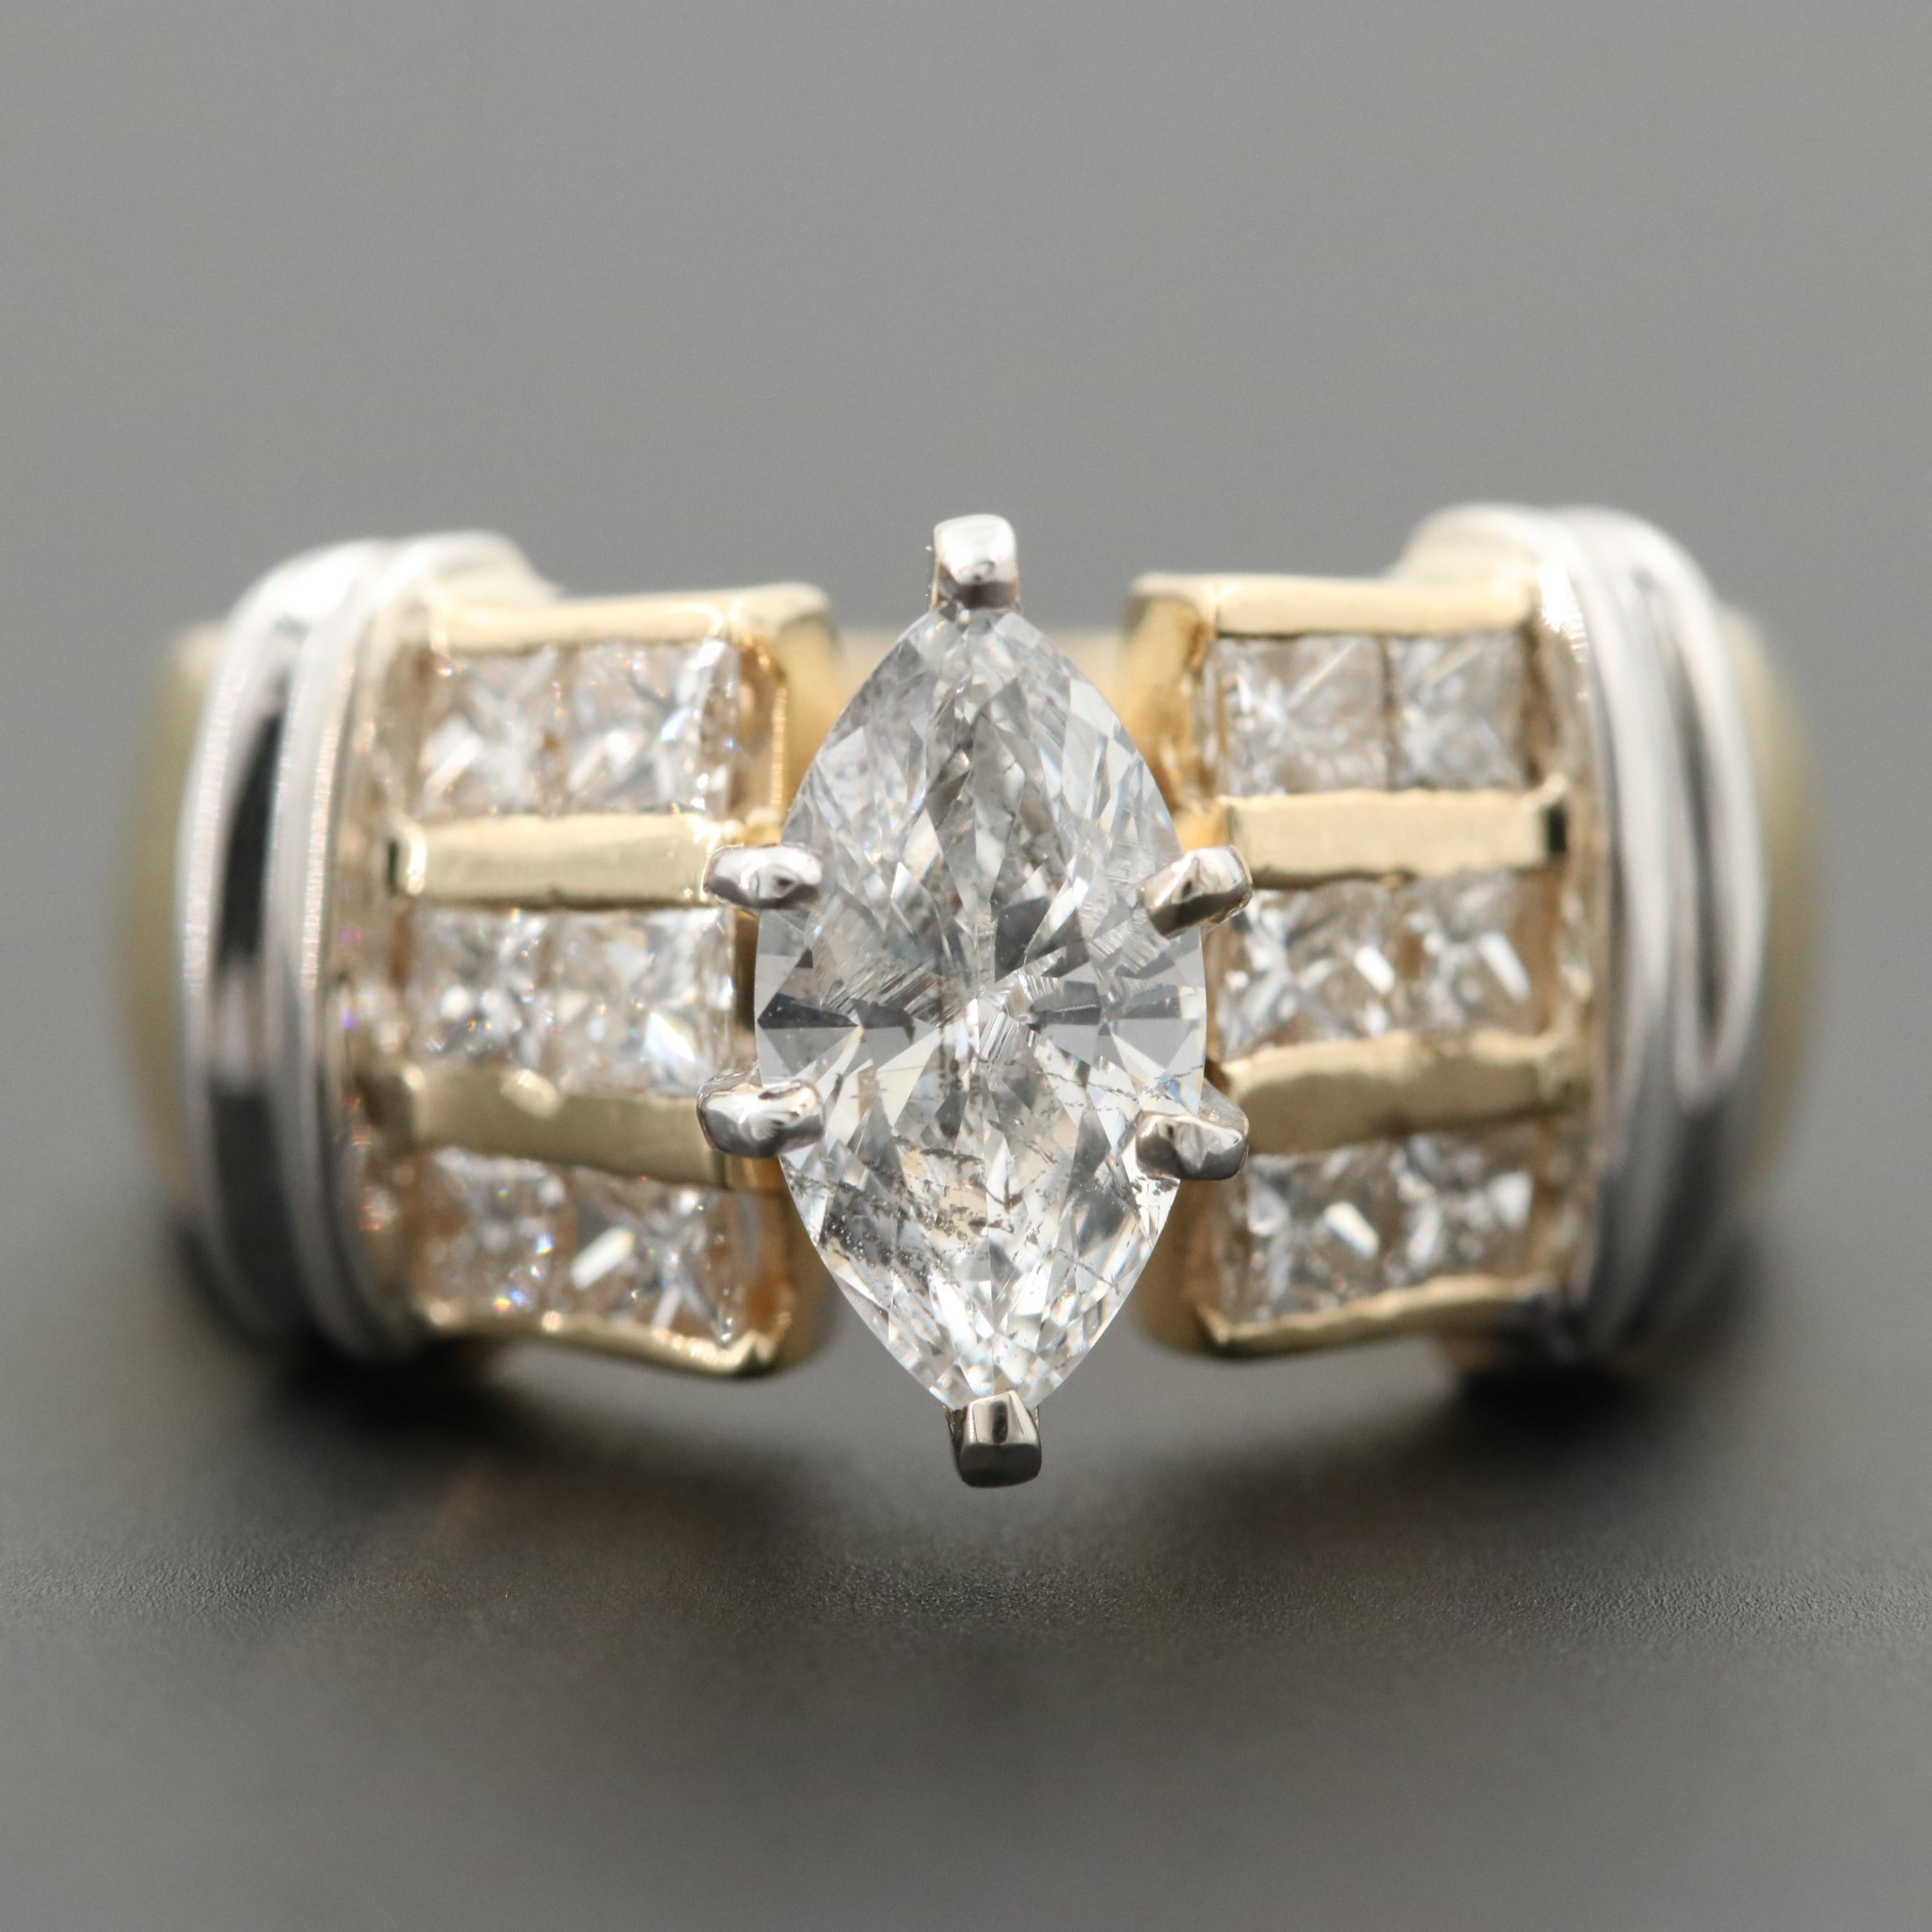 14K Yellow Gold 2.08 CTW Diamond Ring with 14K White Accents